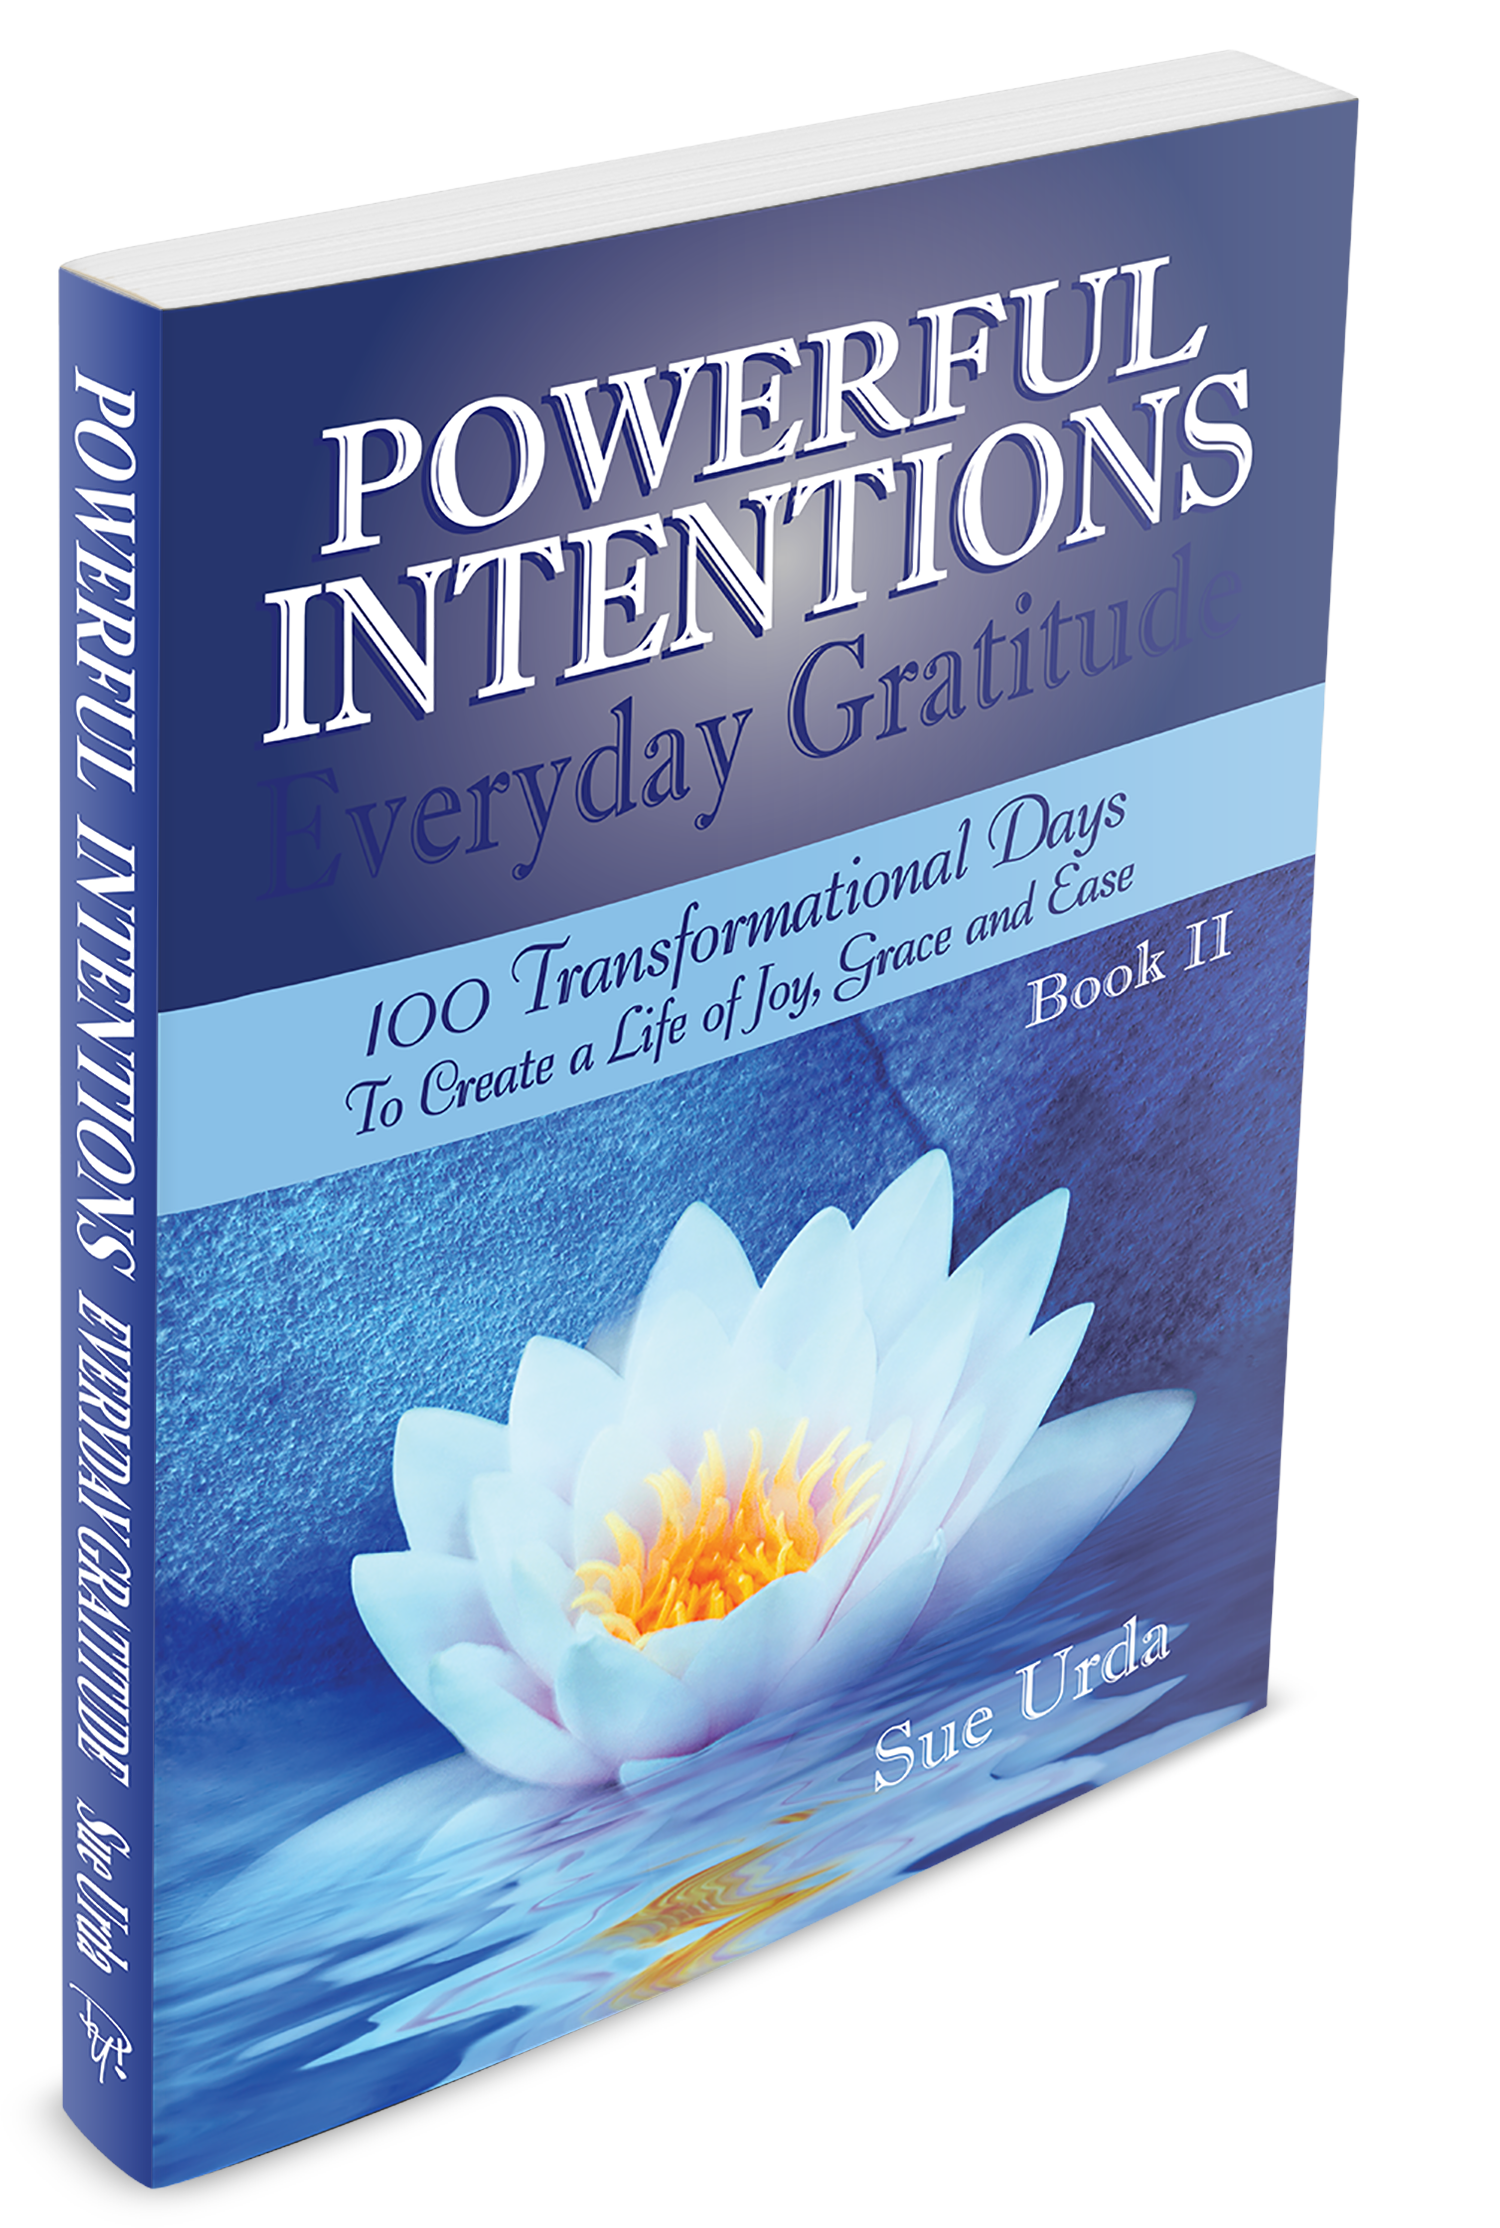 Powerful Intentions ~ Everyday Gratitude Book II by Sue Urda